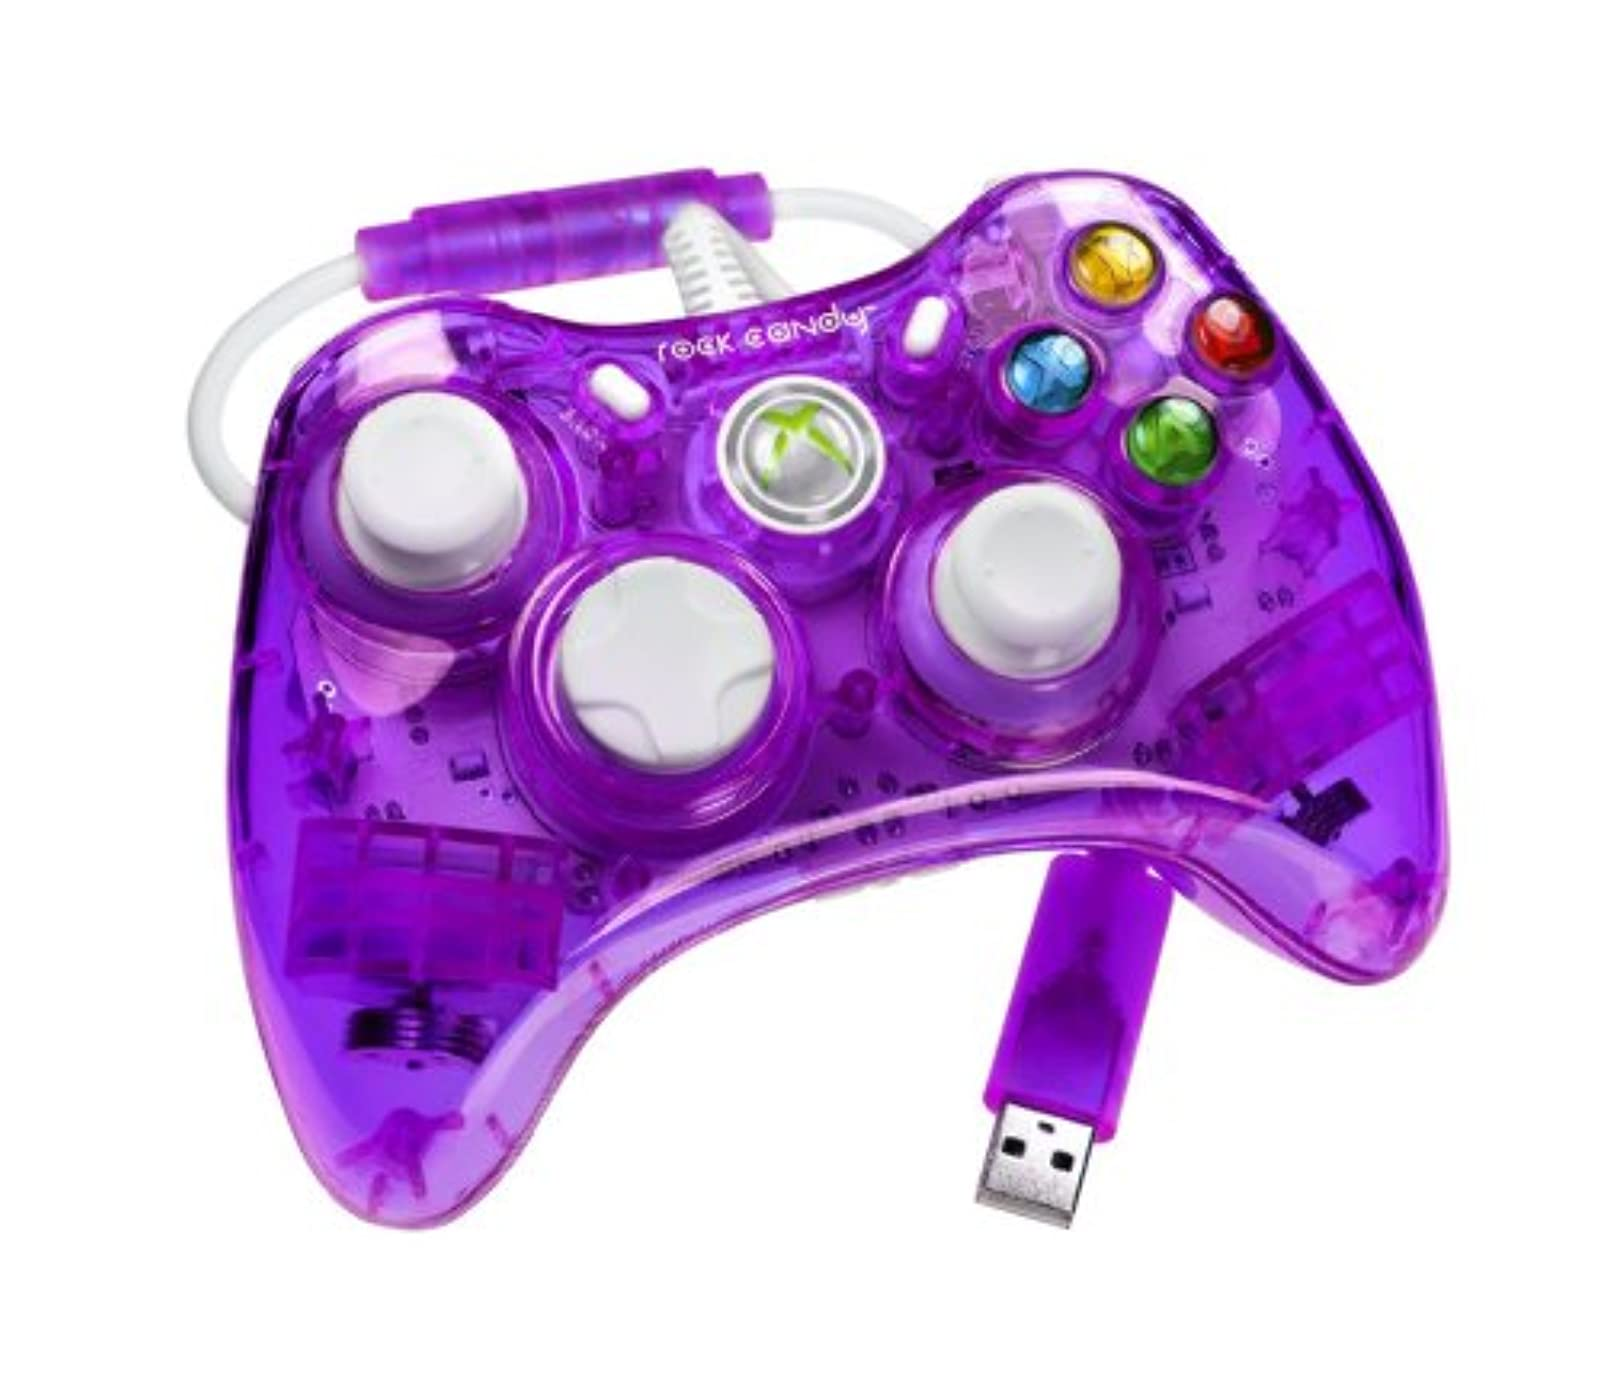 Rock Candy Controller Purple For Xbox 360 Gamepad PL-3760